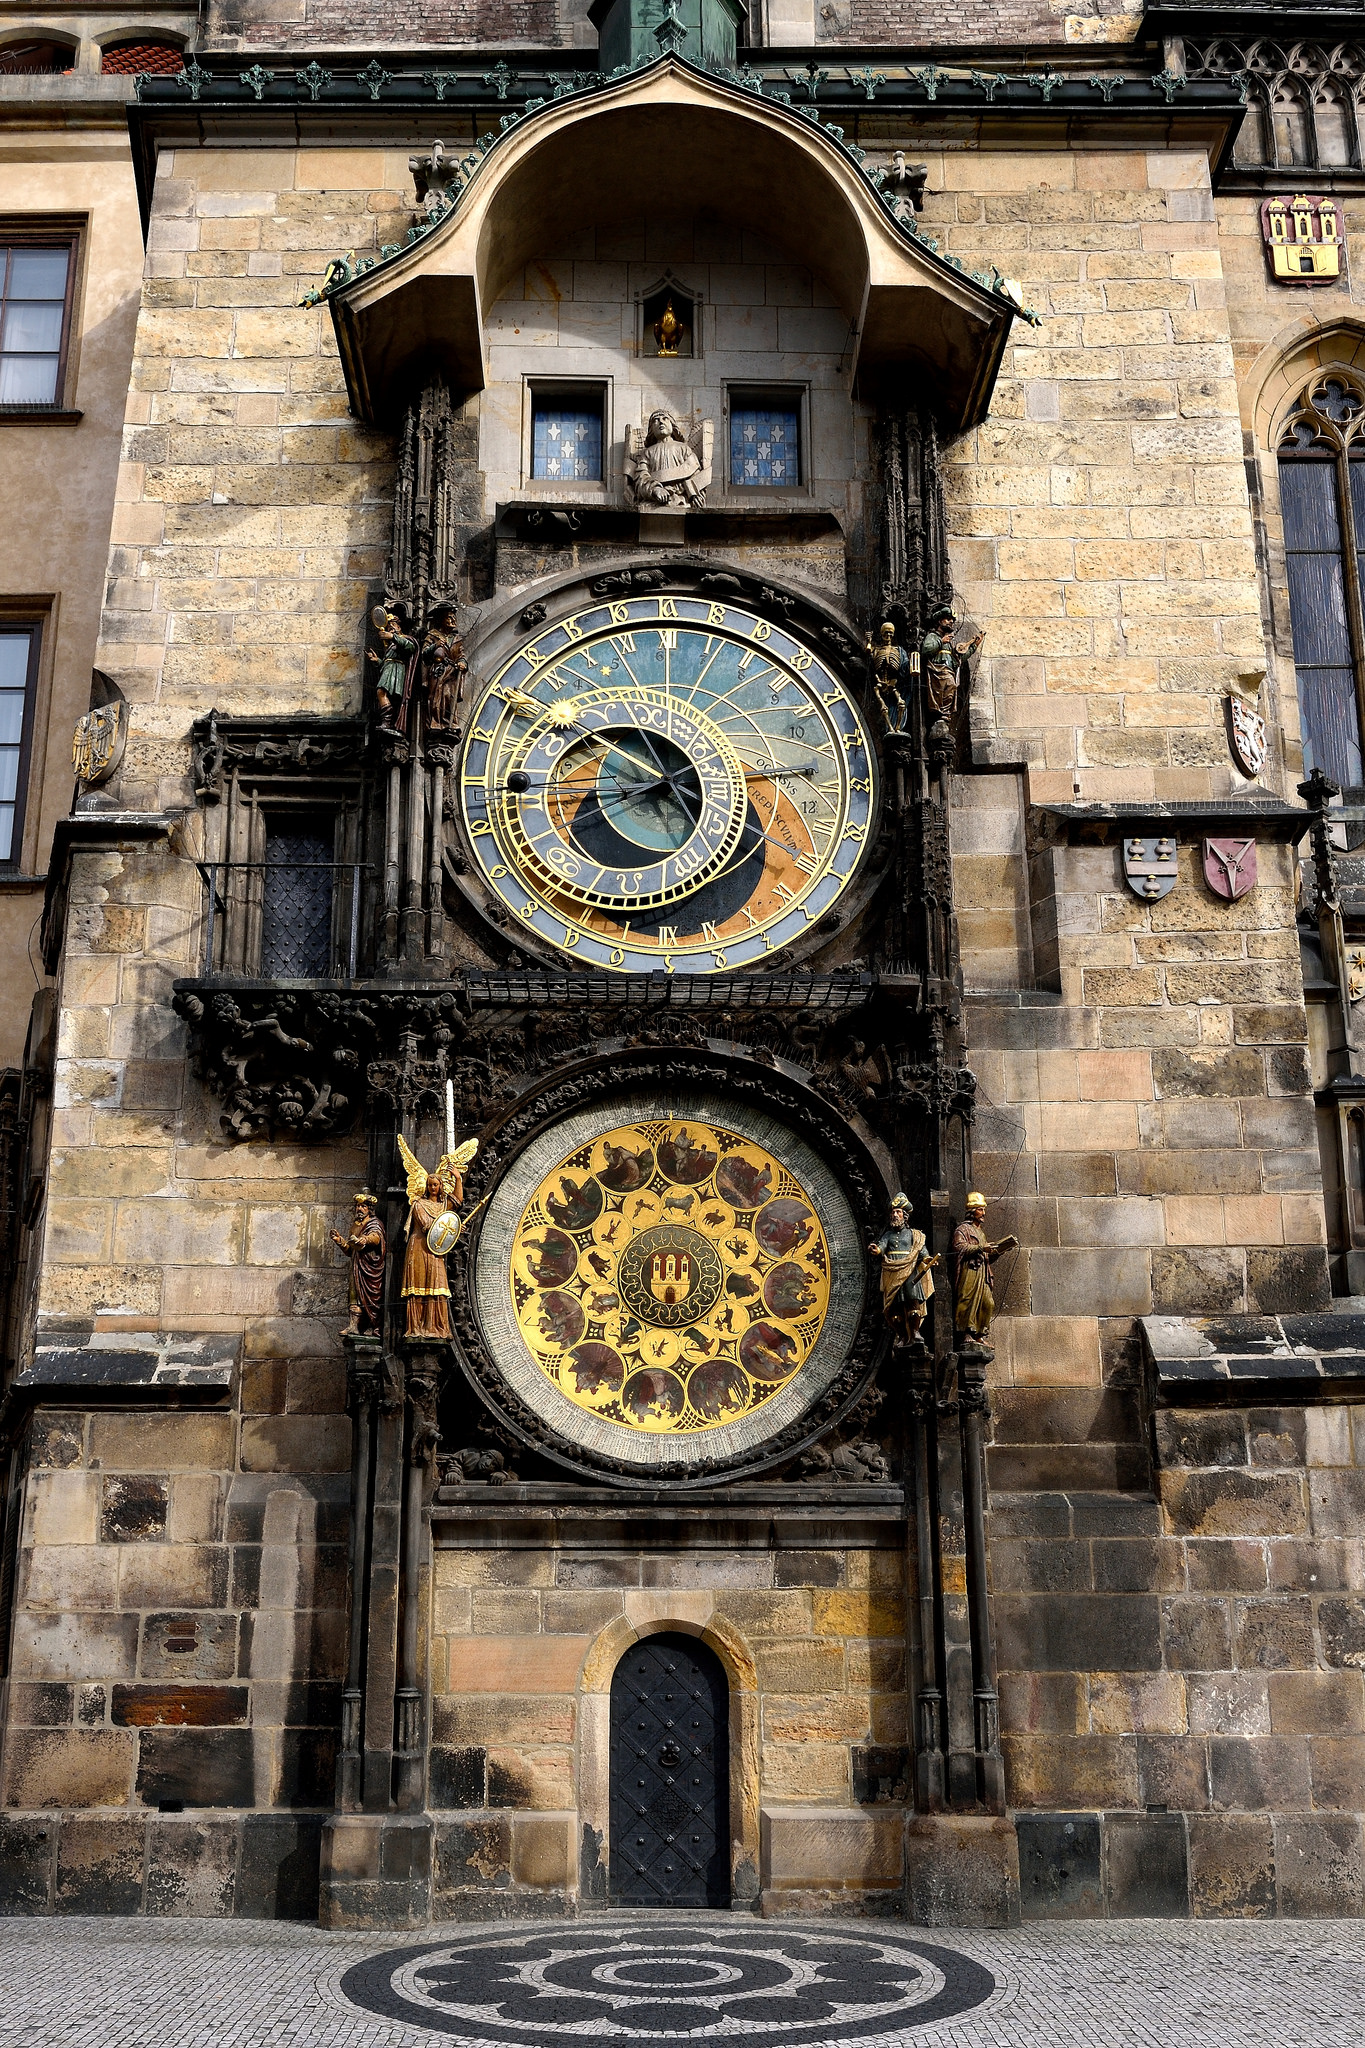 600 Years and Counting for the Prague Astronomical Clock | SkyriseCities